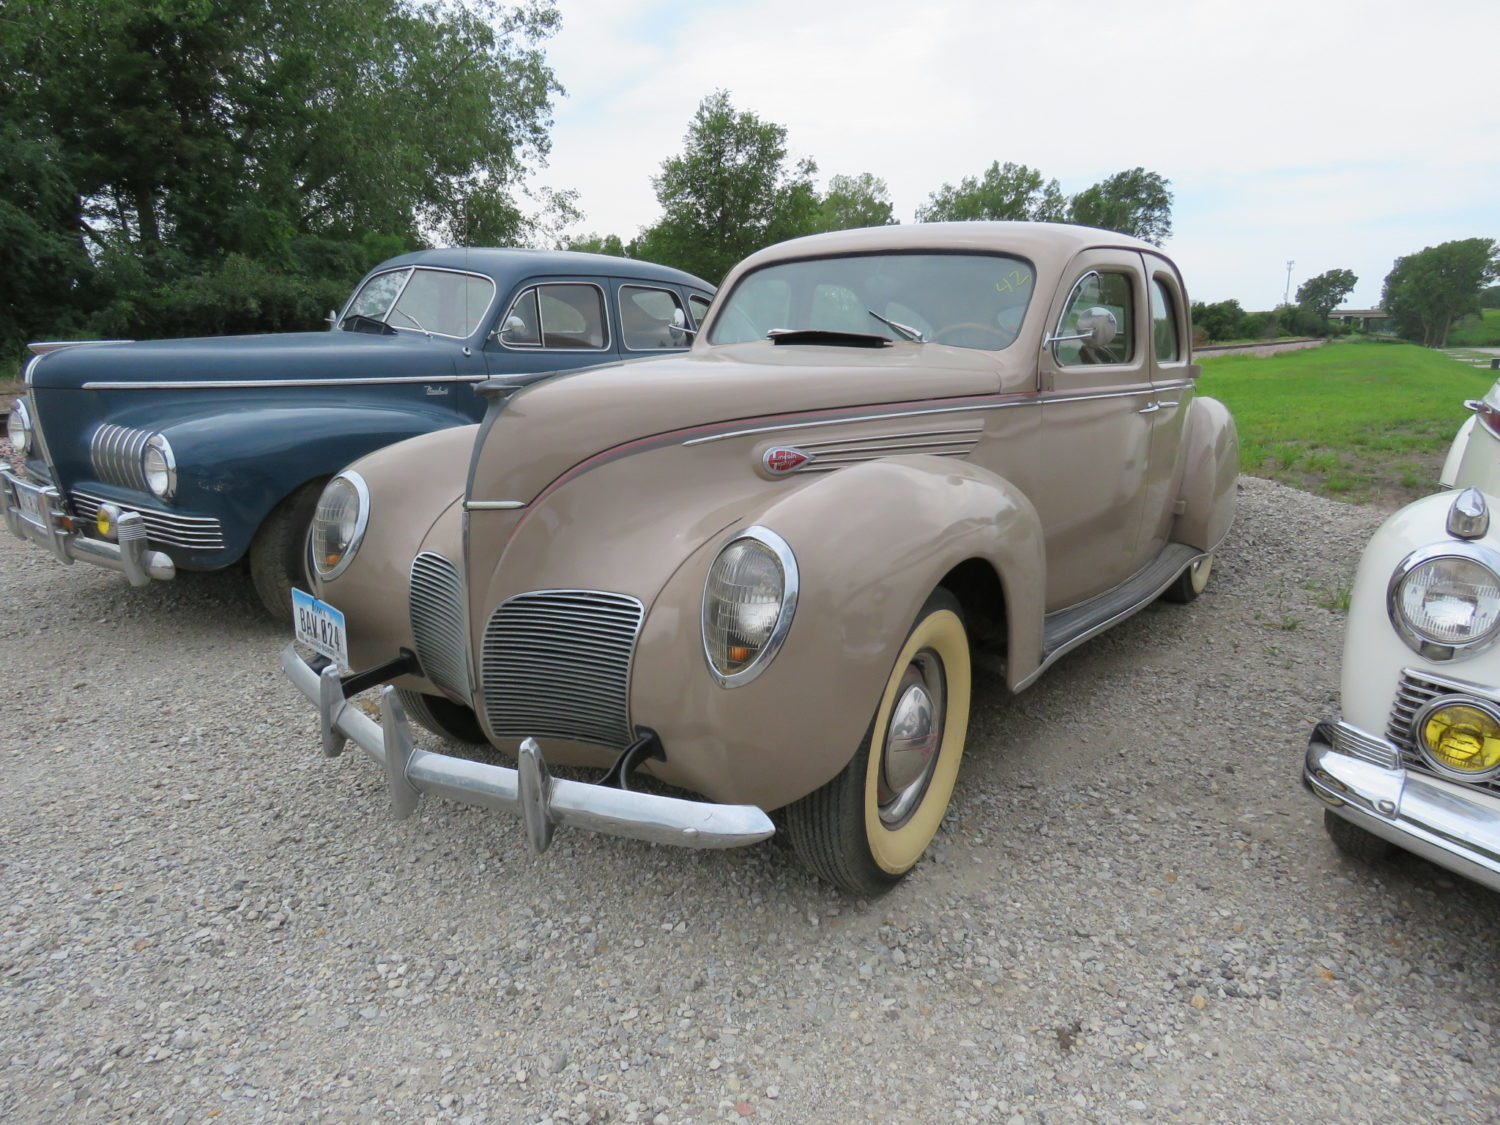 Collector Cars & Parts.. The Raymond Andrews Collection - image 3